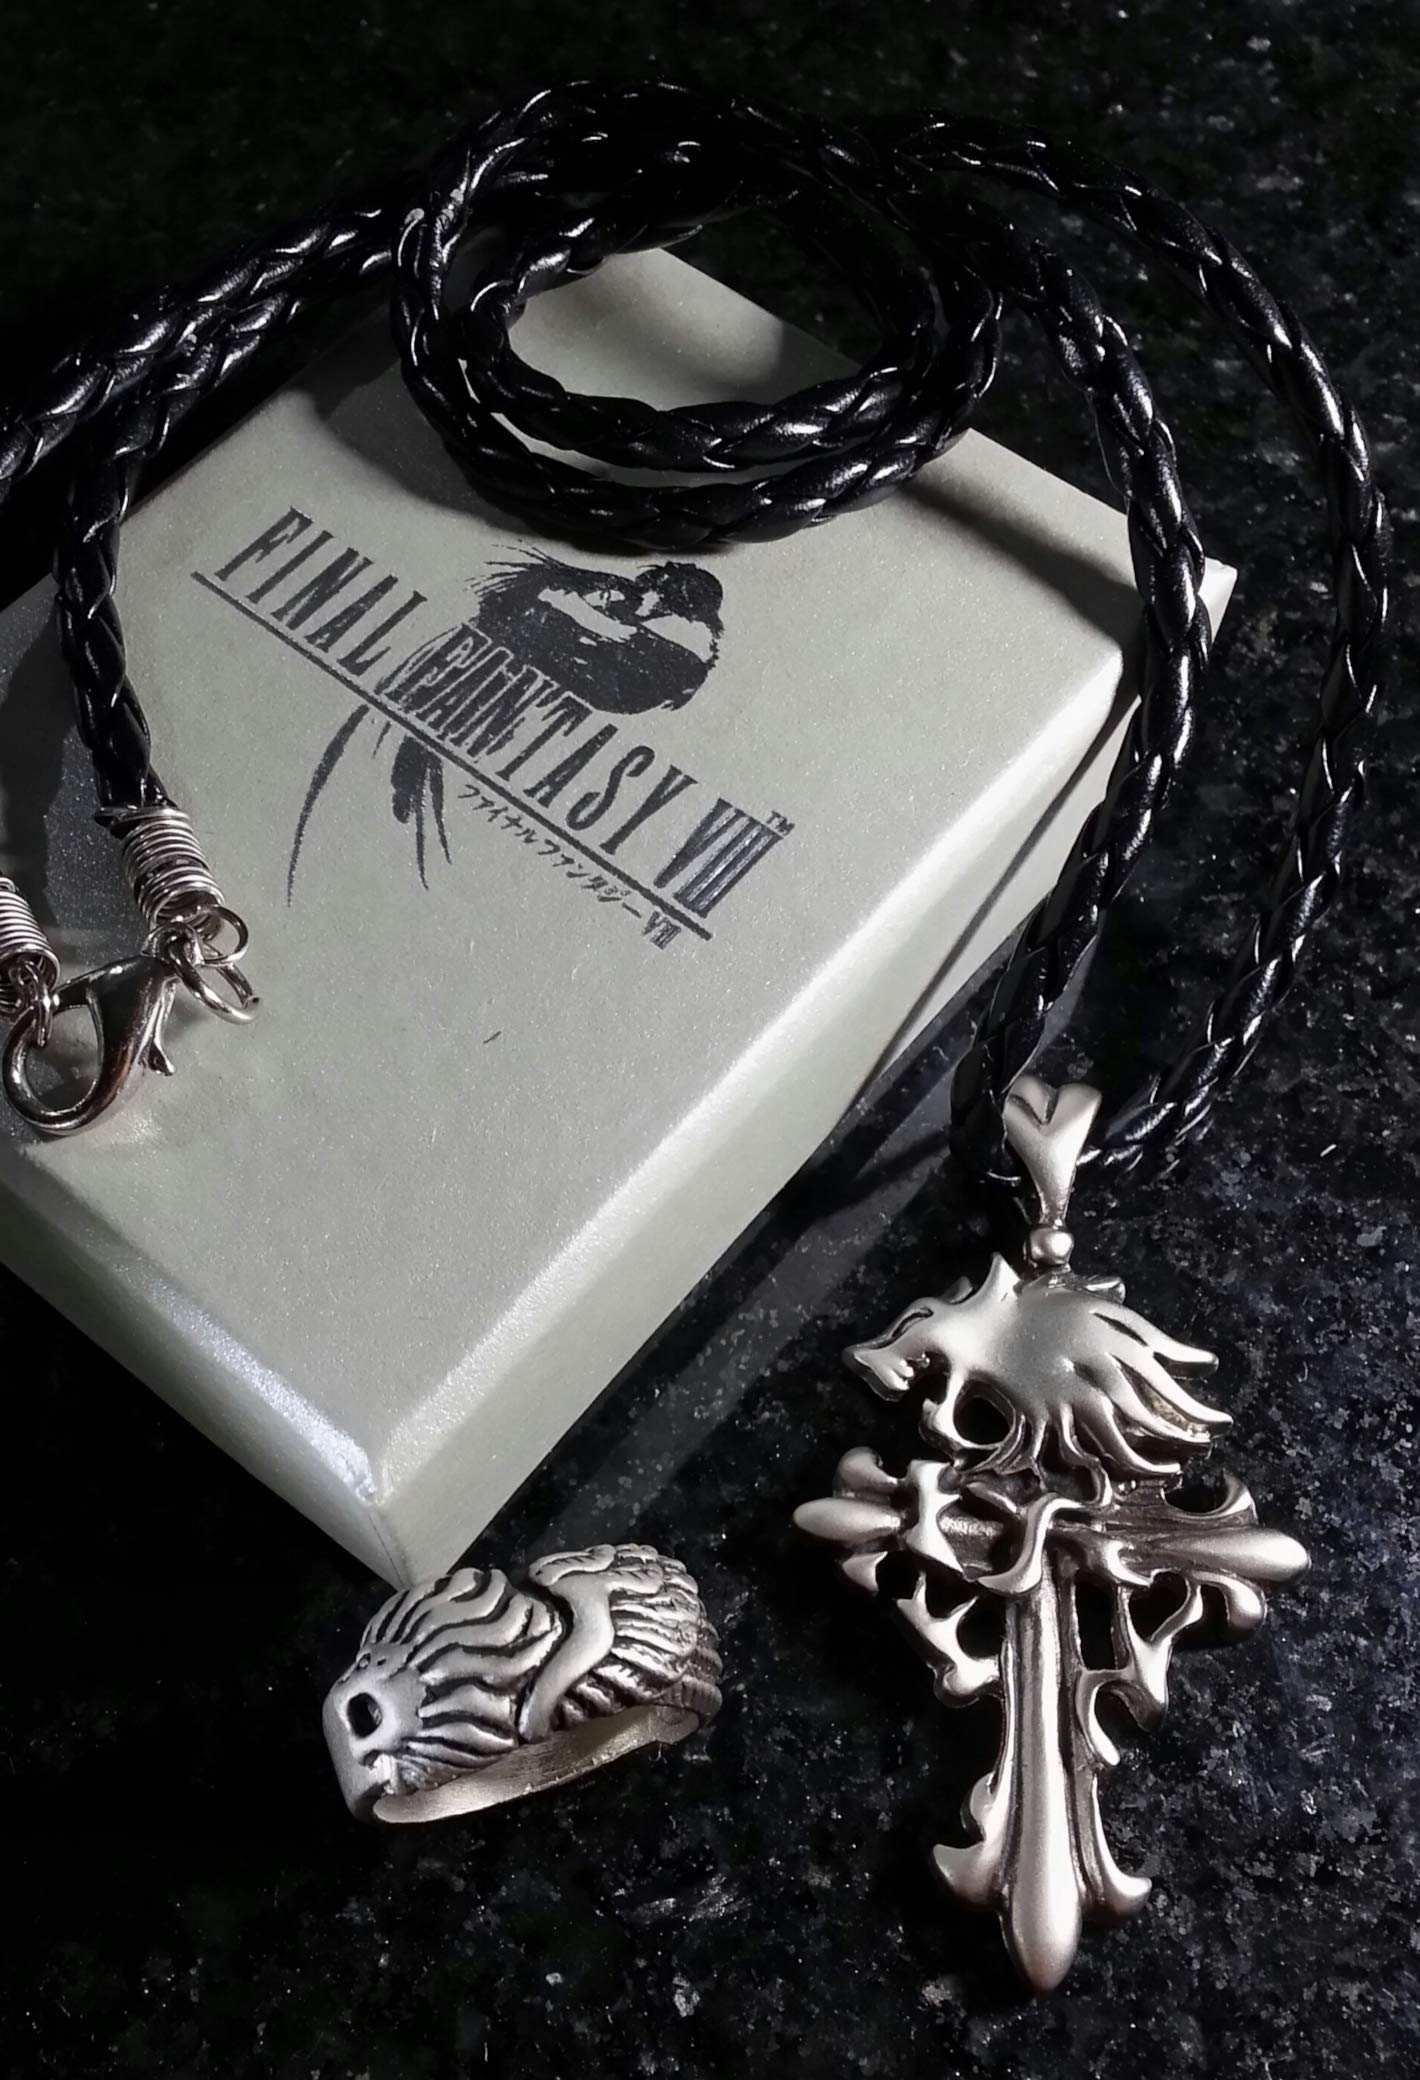 Final Fantasy VIII Squall Griever Necklace & Ring | FF8 Kingdom Hearts Cosplay Dissidia Cloud Serah Anime